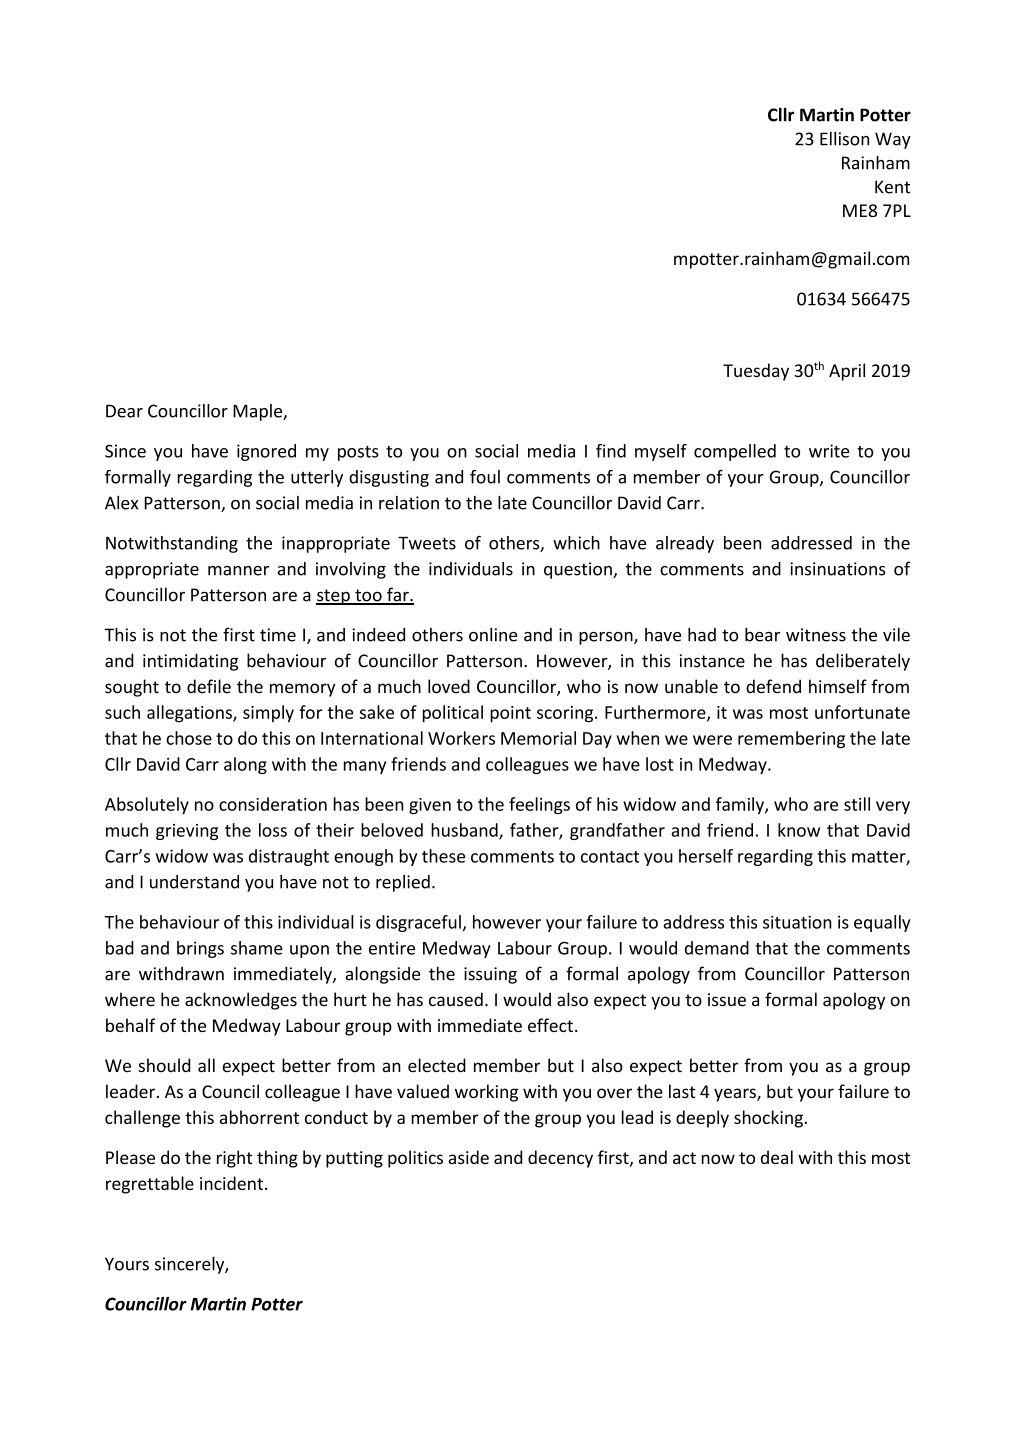 An Open Letter to Cllr Vince Maple from Cllr Martin Potter